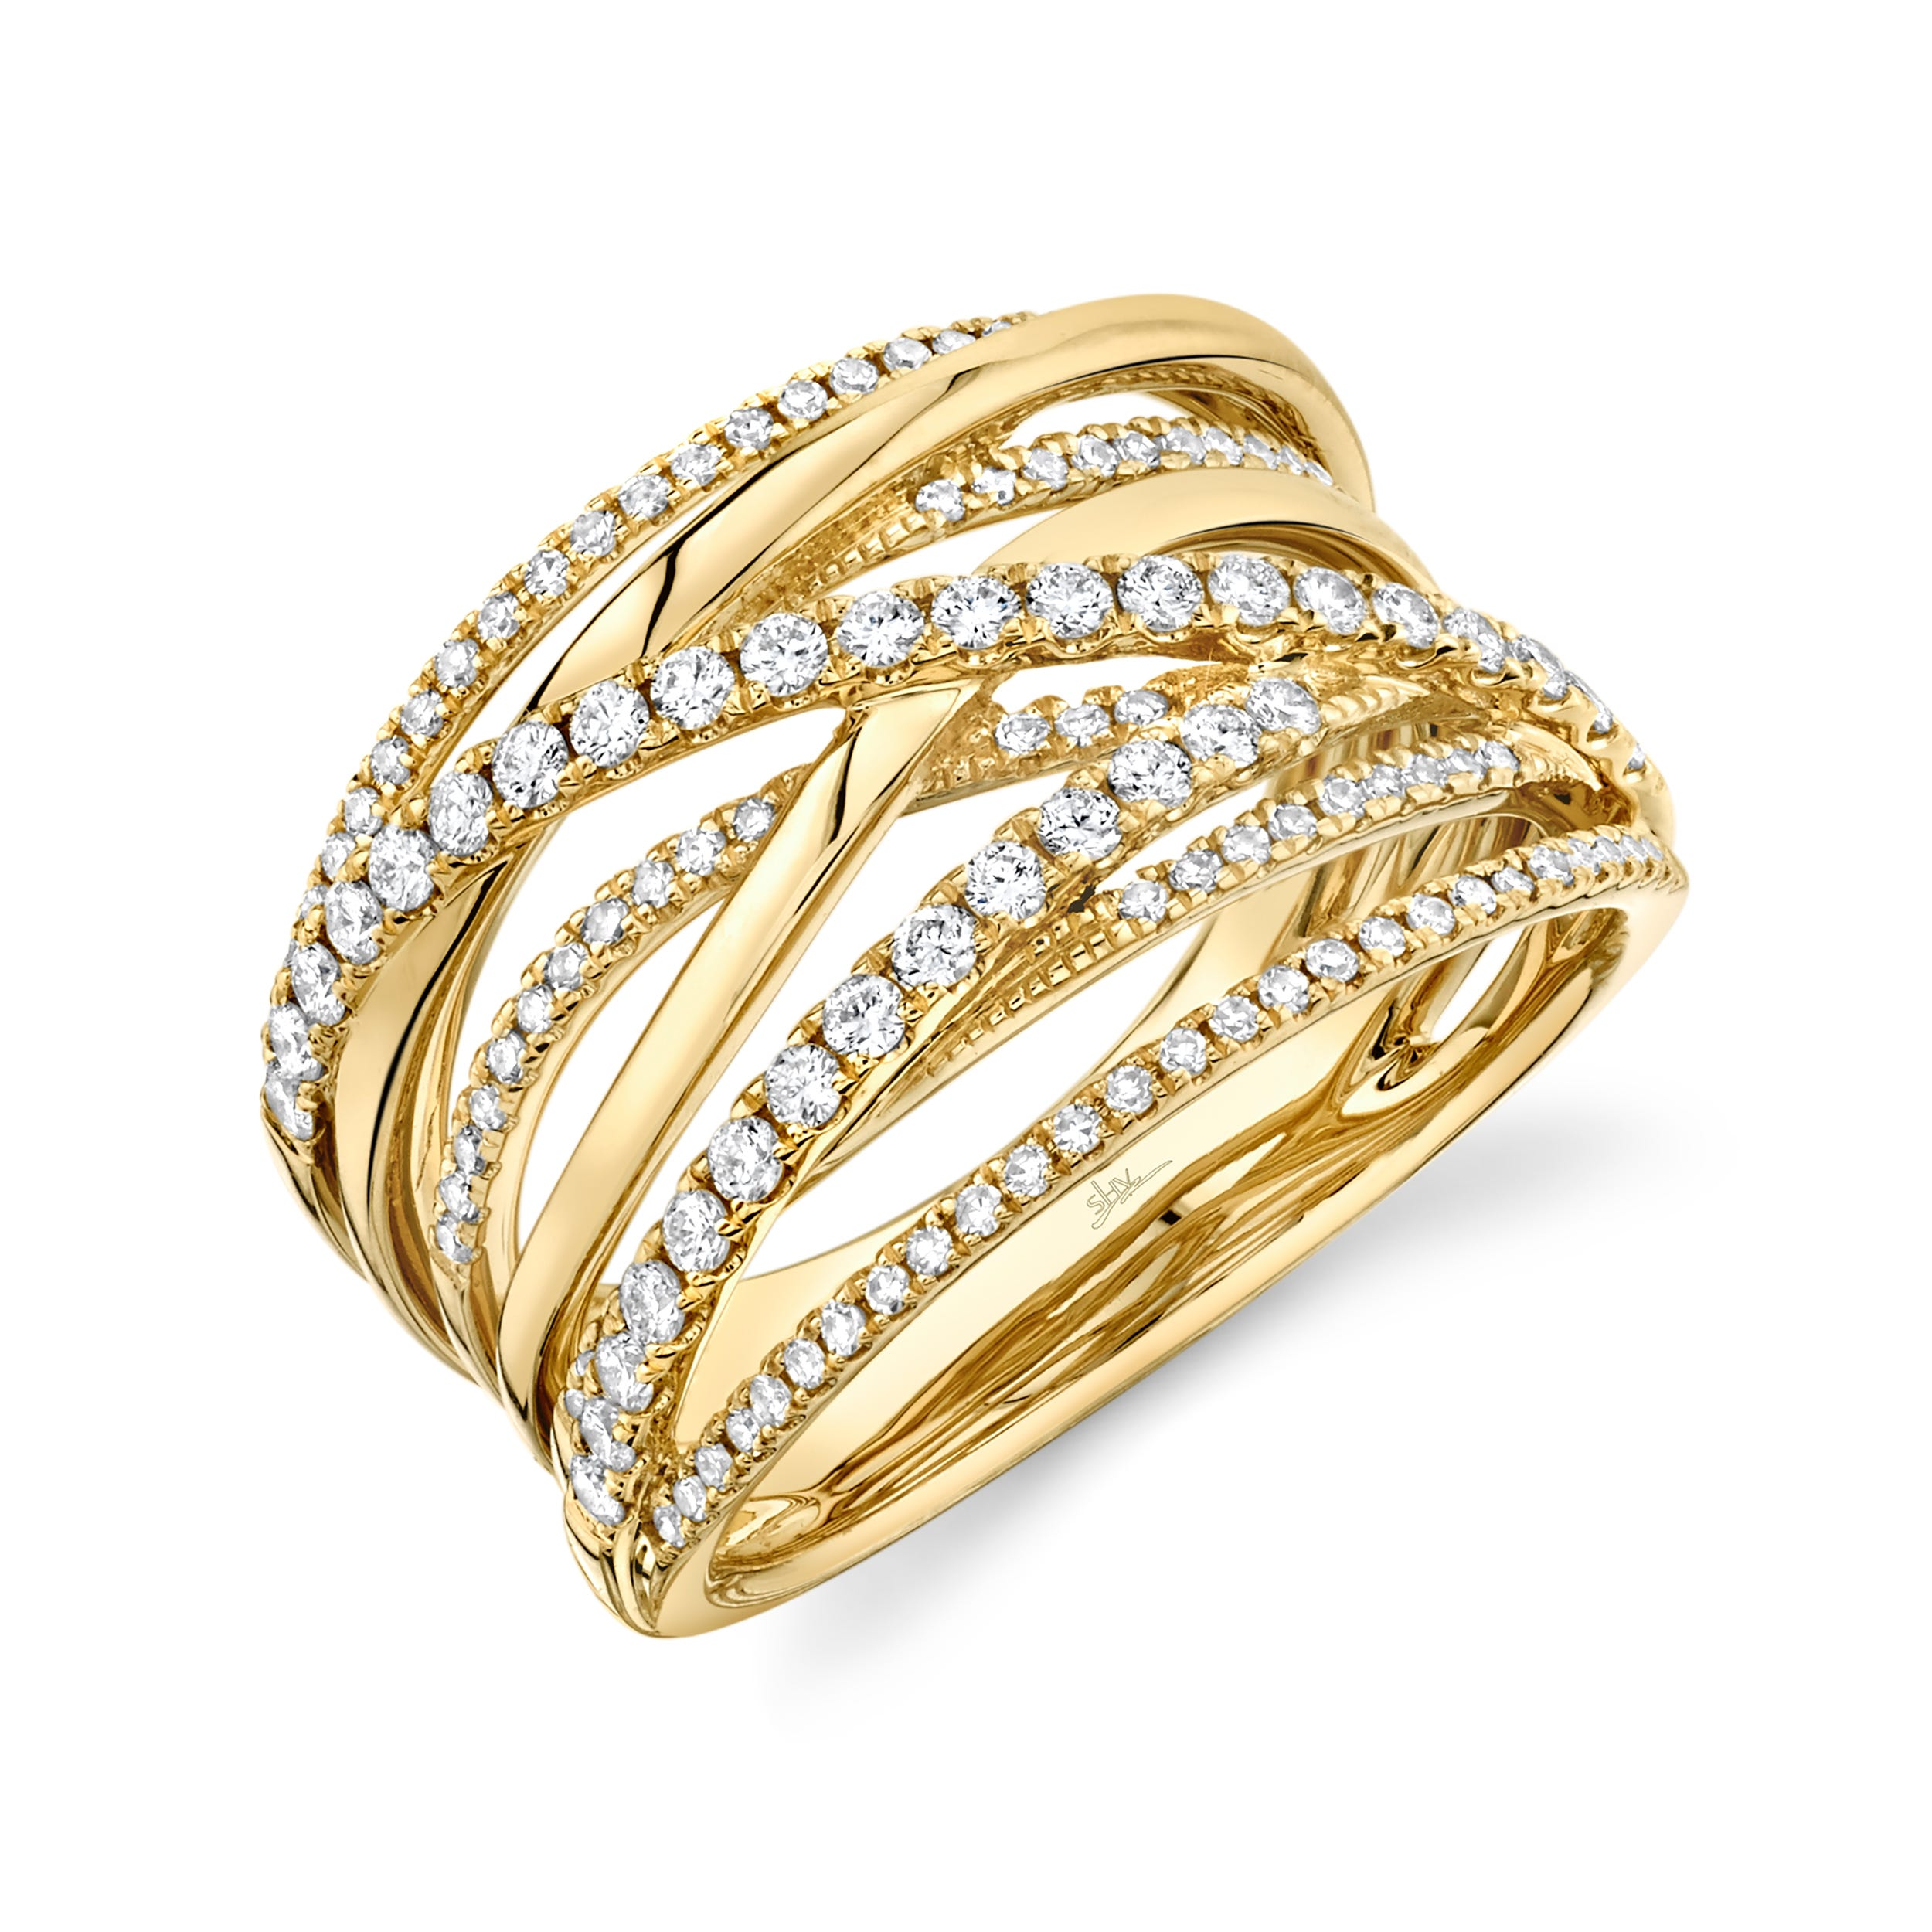 Shy Creation Diamond Crossover Ring in 14k Yellow Gold  SC55005591